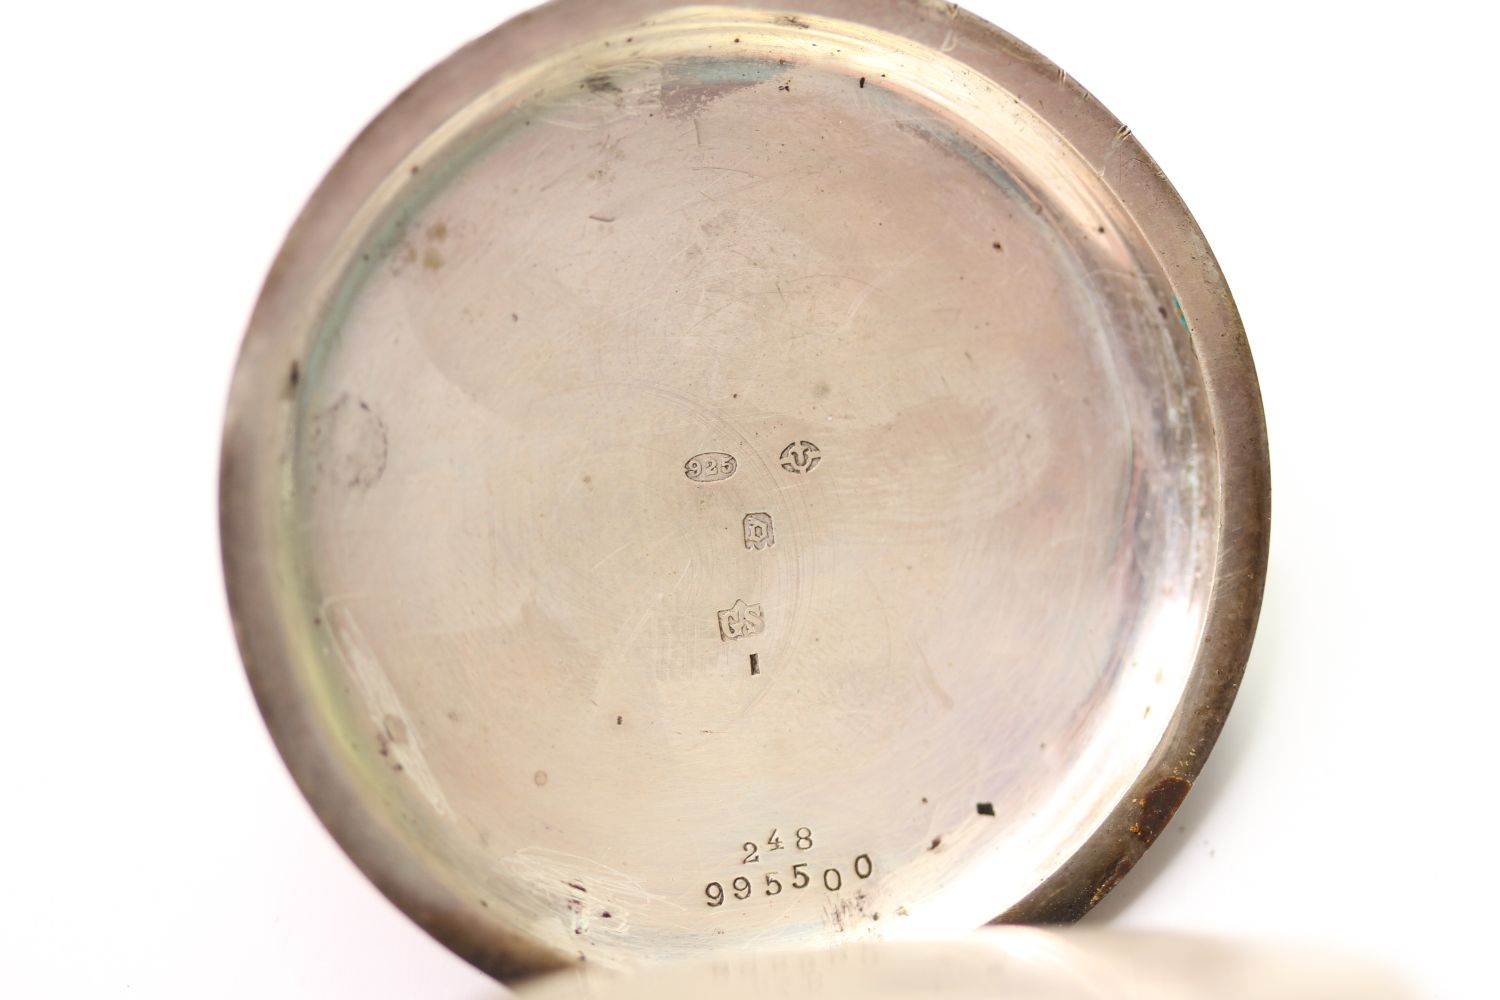 SILVER THO'S RUSSELL & SON POCKET WATCH & ALBERT CHAIN, circular white dial with arabic numbers, - Image 6 of 6